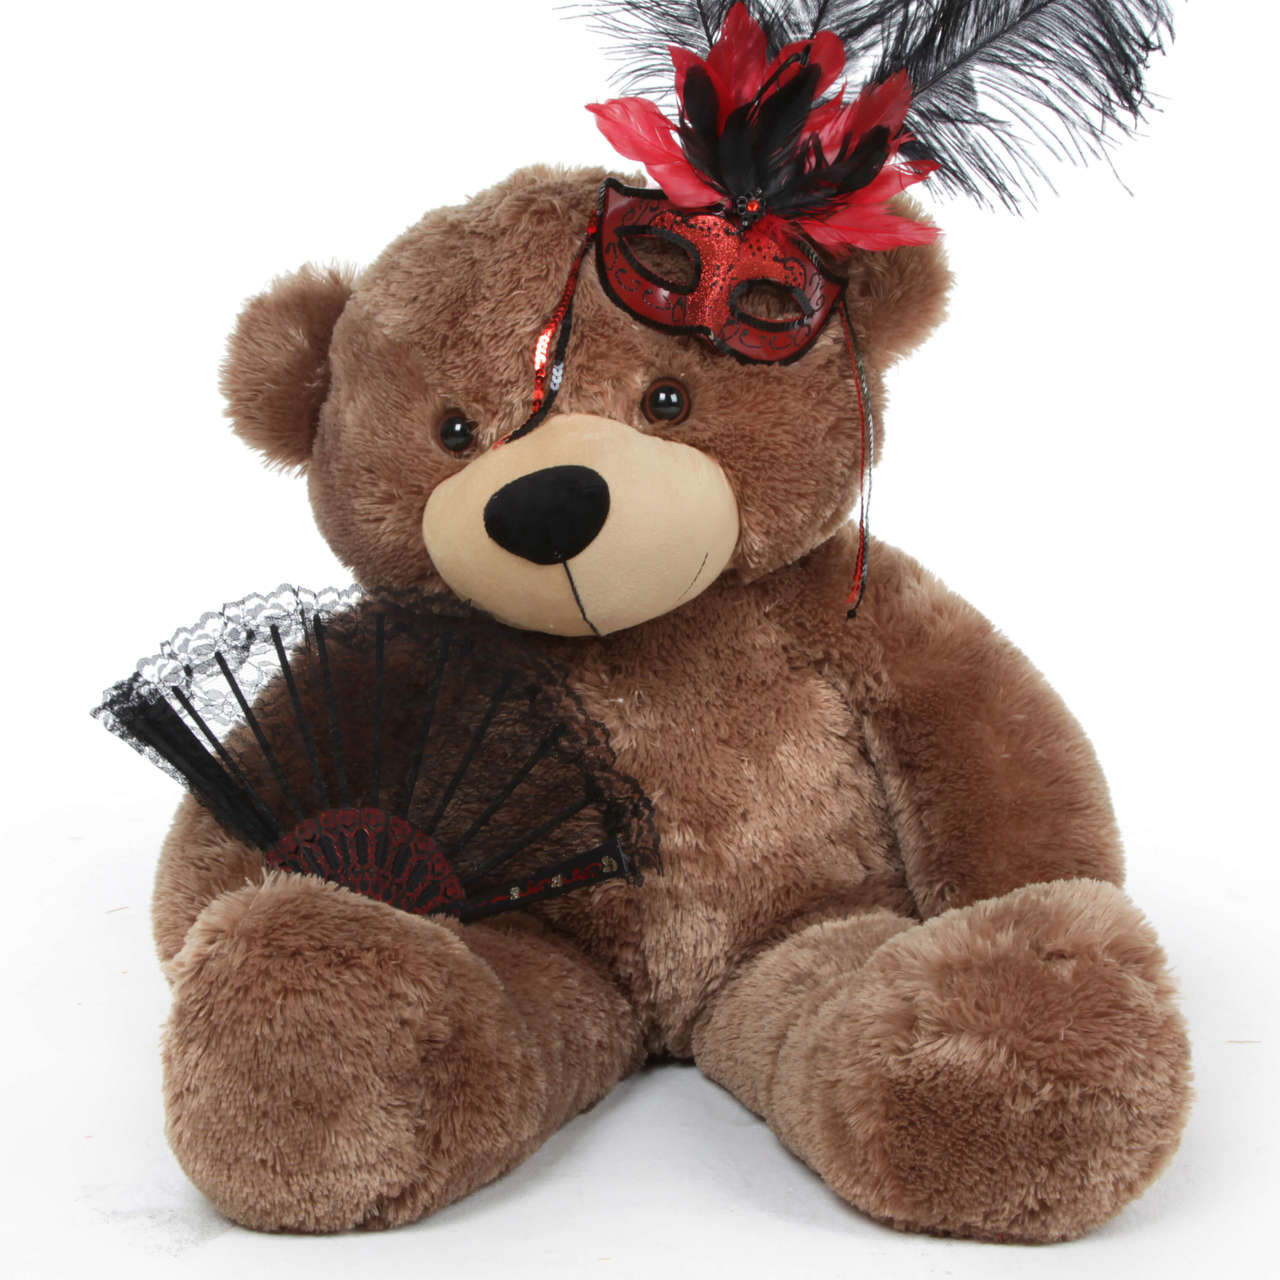 Sunny Cuddles Halloween Giant Teddy Bear In Red And Black